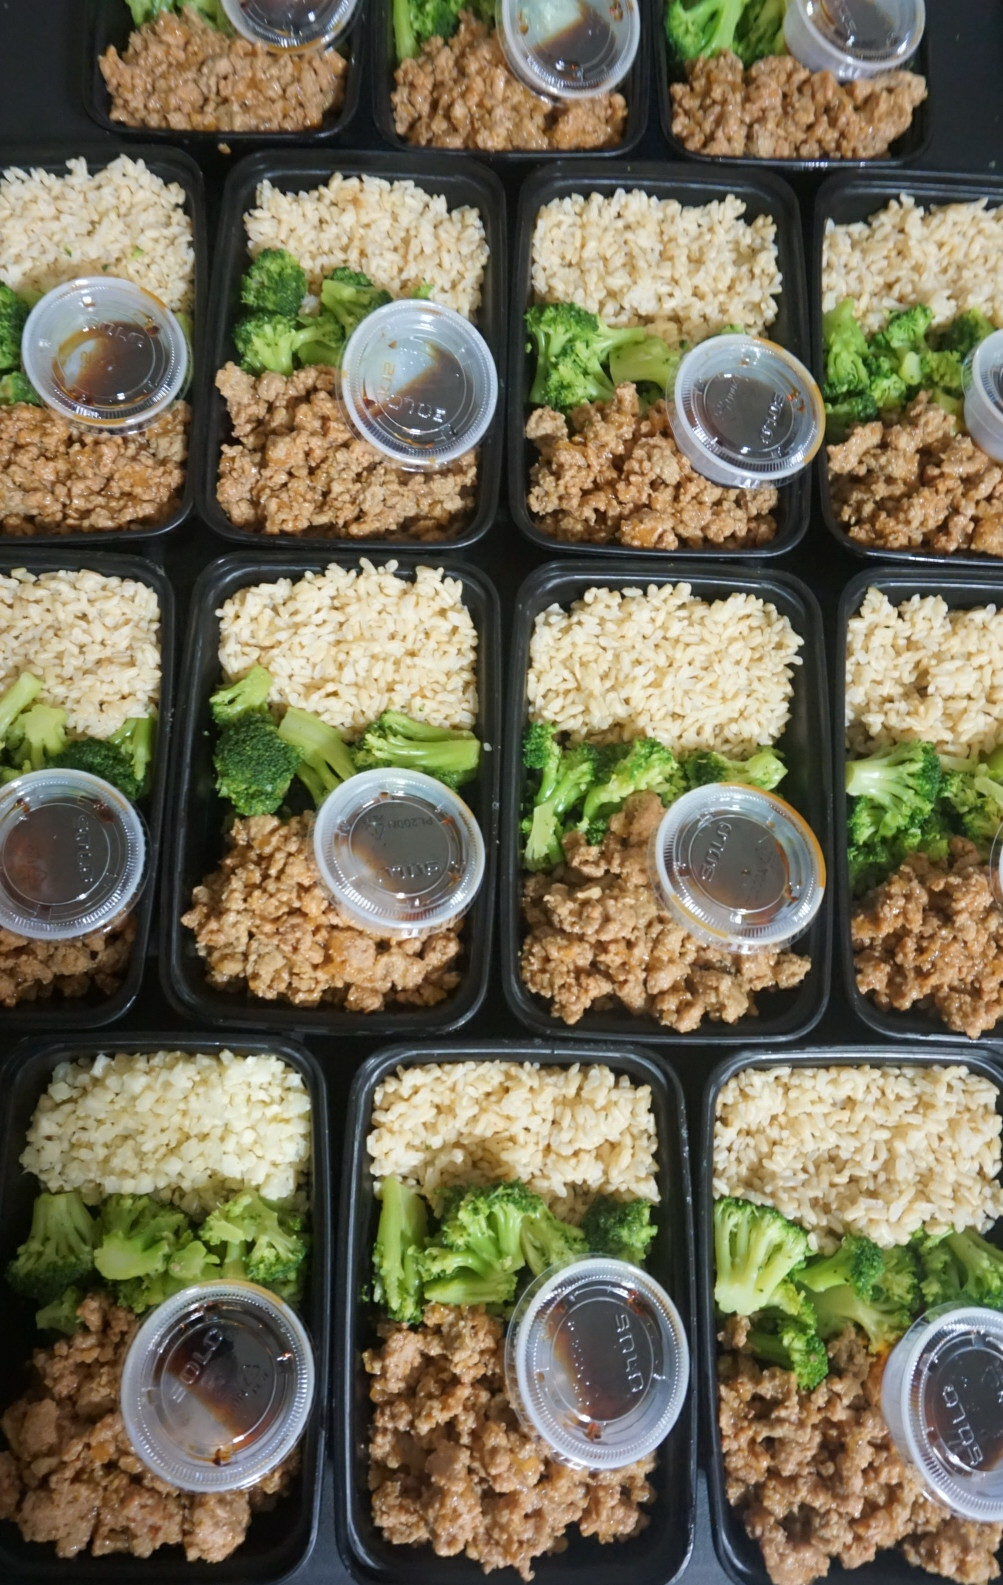 Teriyaki Turkey Bowl  Lean ground turkey bathed in a homemade teriyaki sauce. Served with brown rice and steamed broccoli.